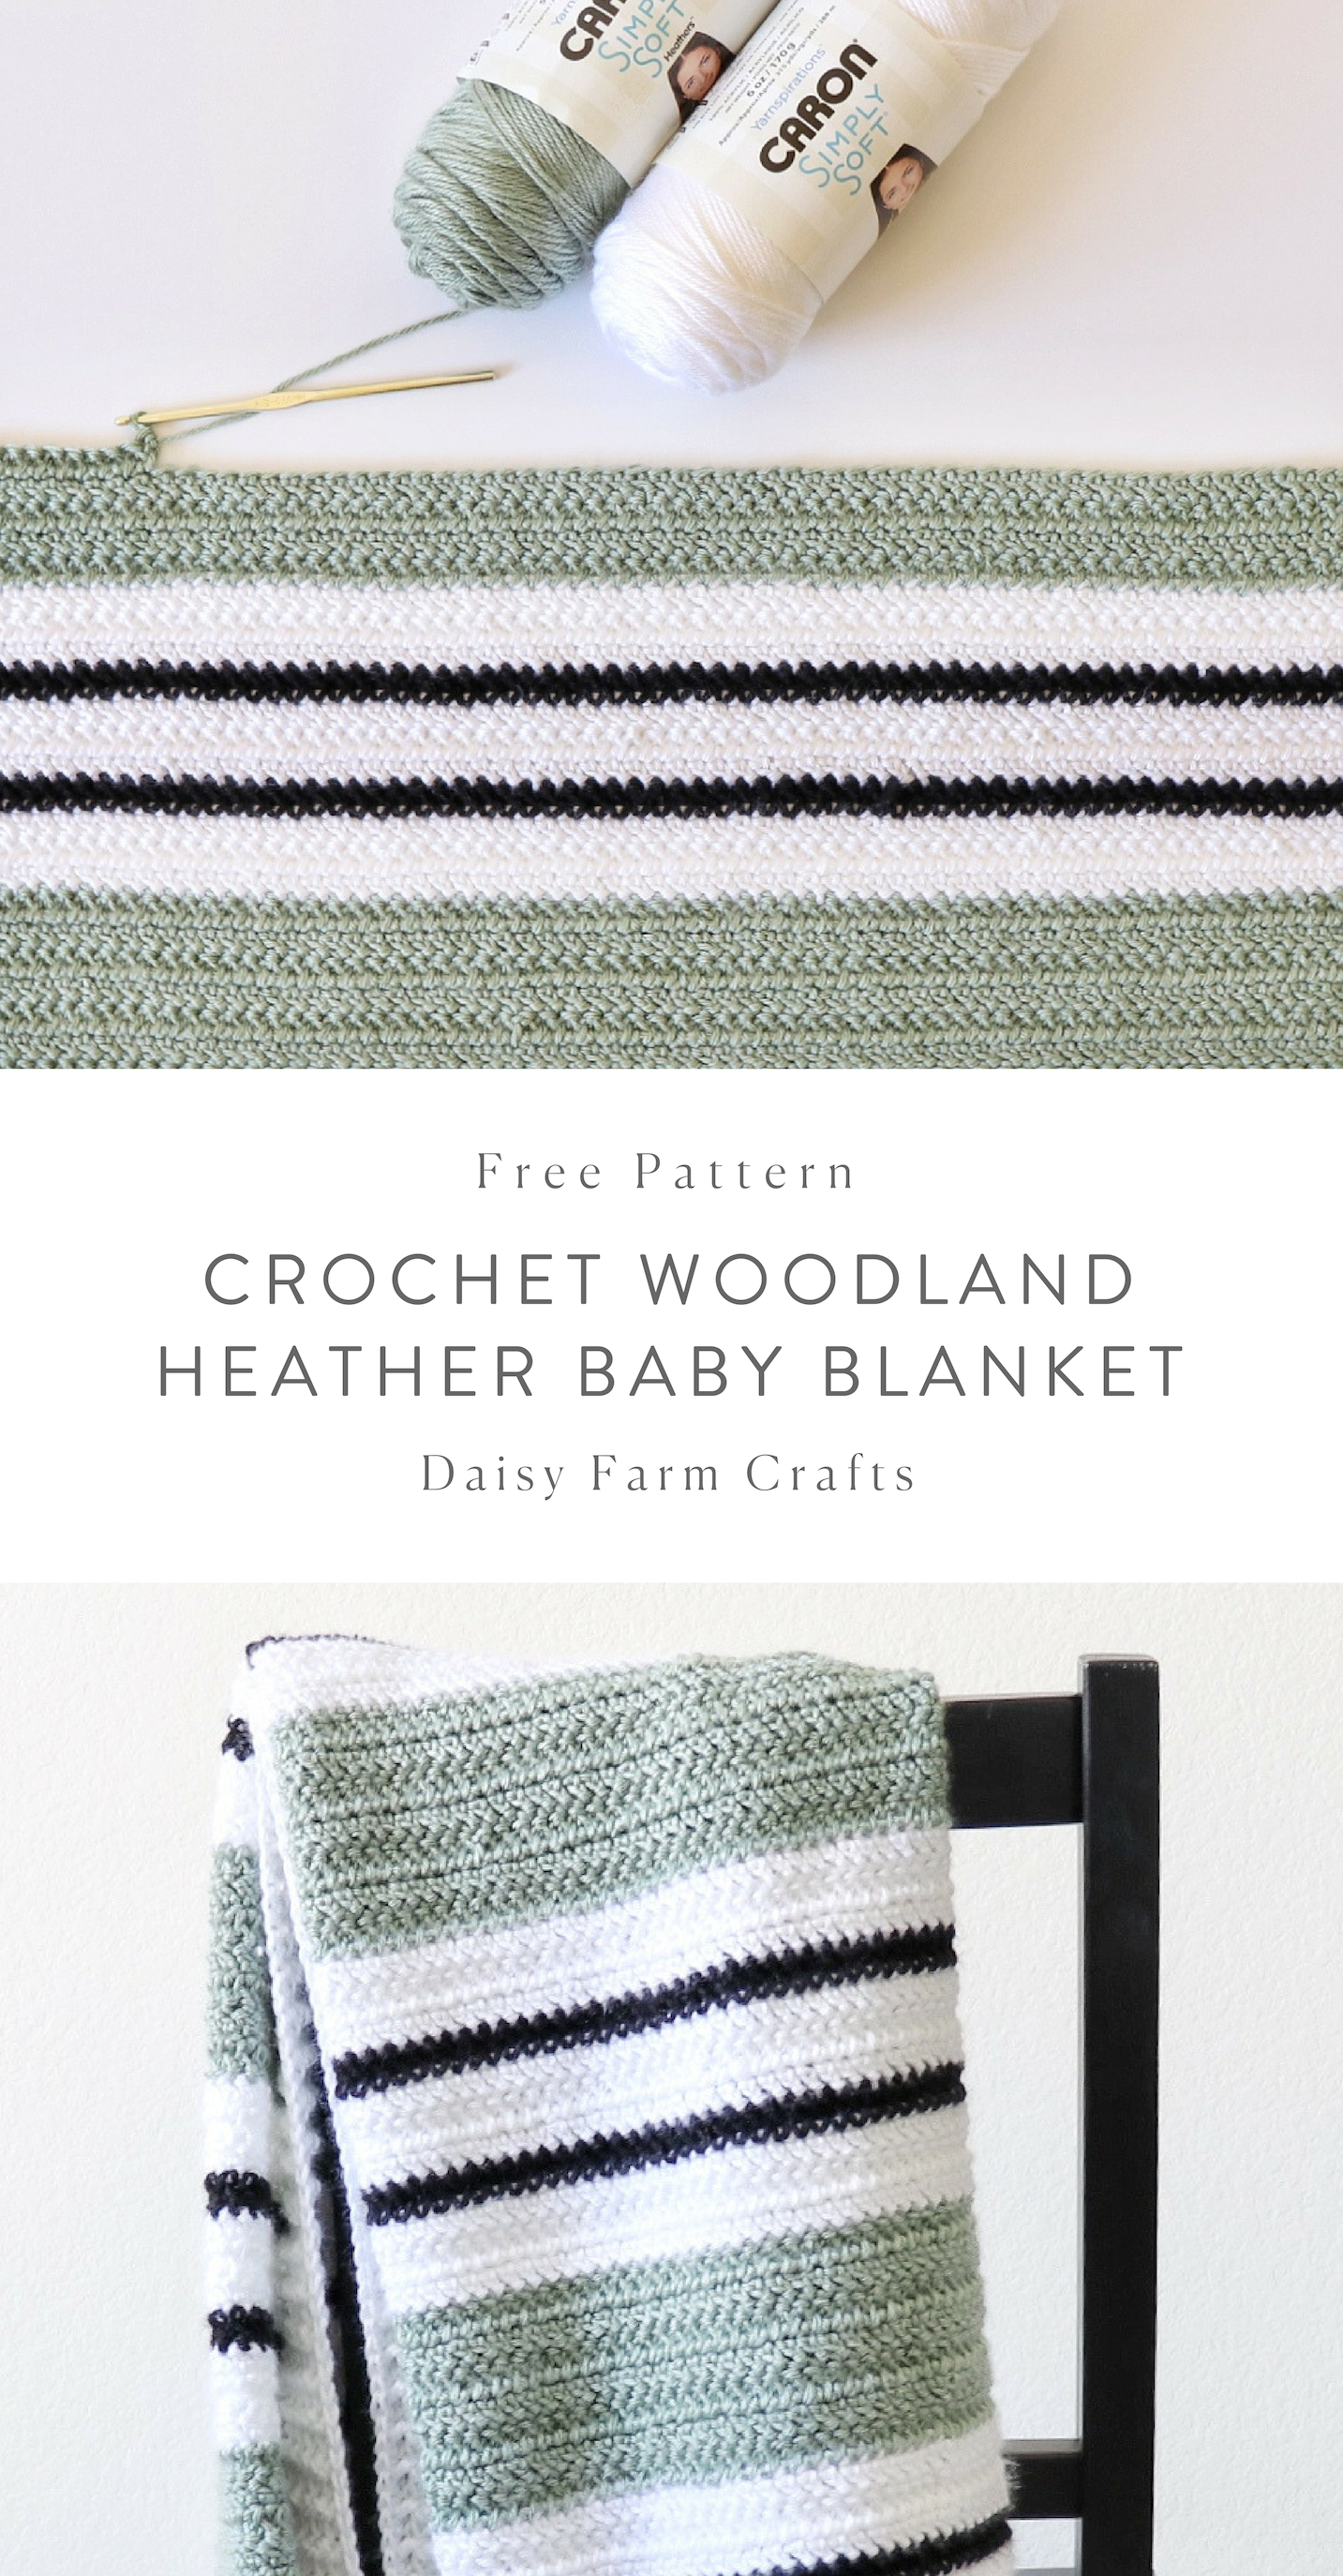 Free Pattern - Crochet Woodland Heather Baby Blanket | Crochet ...